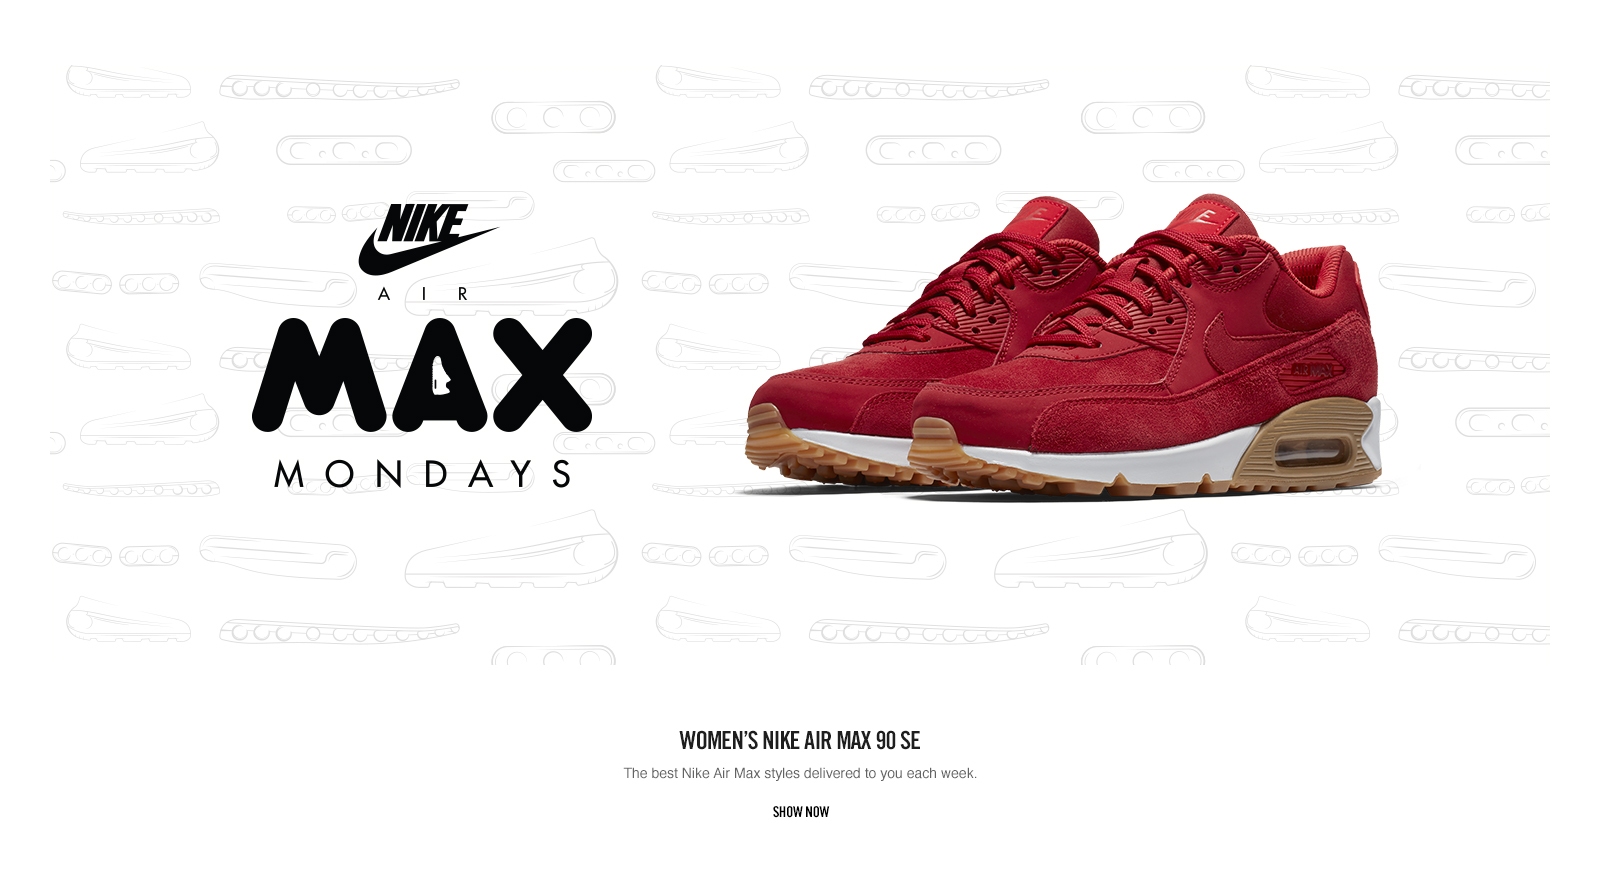 NIKE217_.com_Sp18_Air Max Monday_WLP (1).jpg